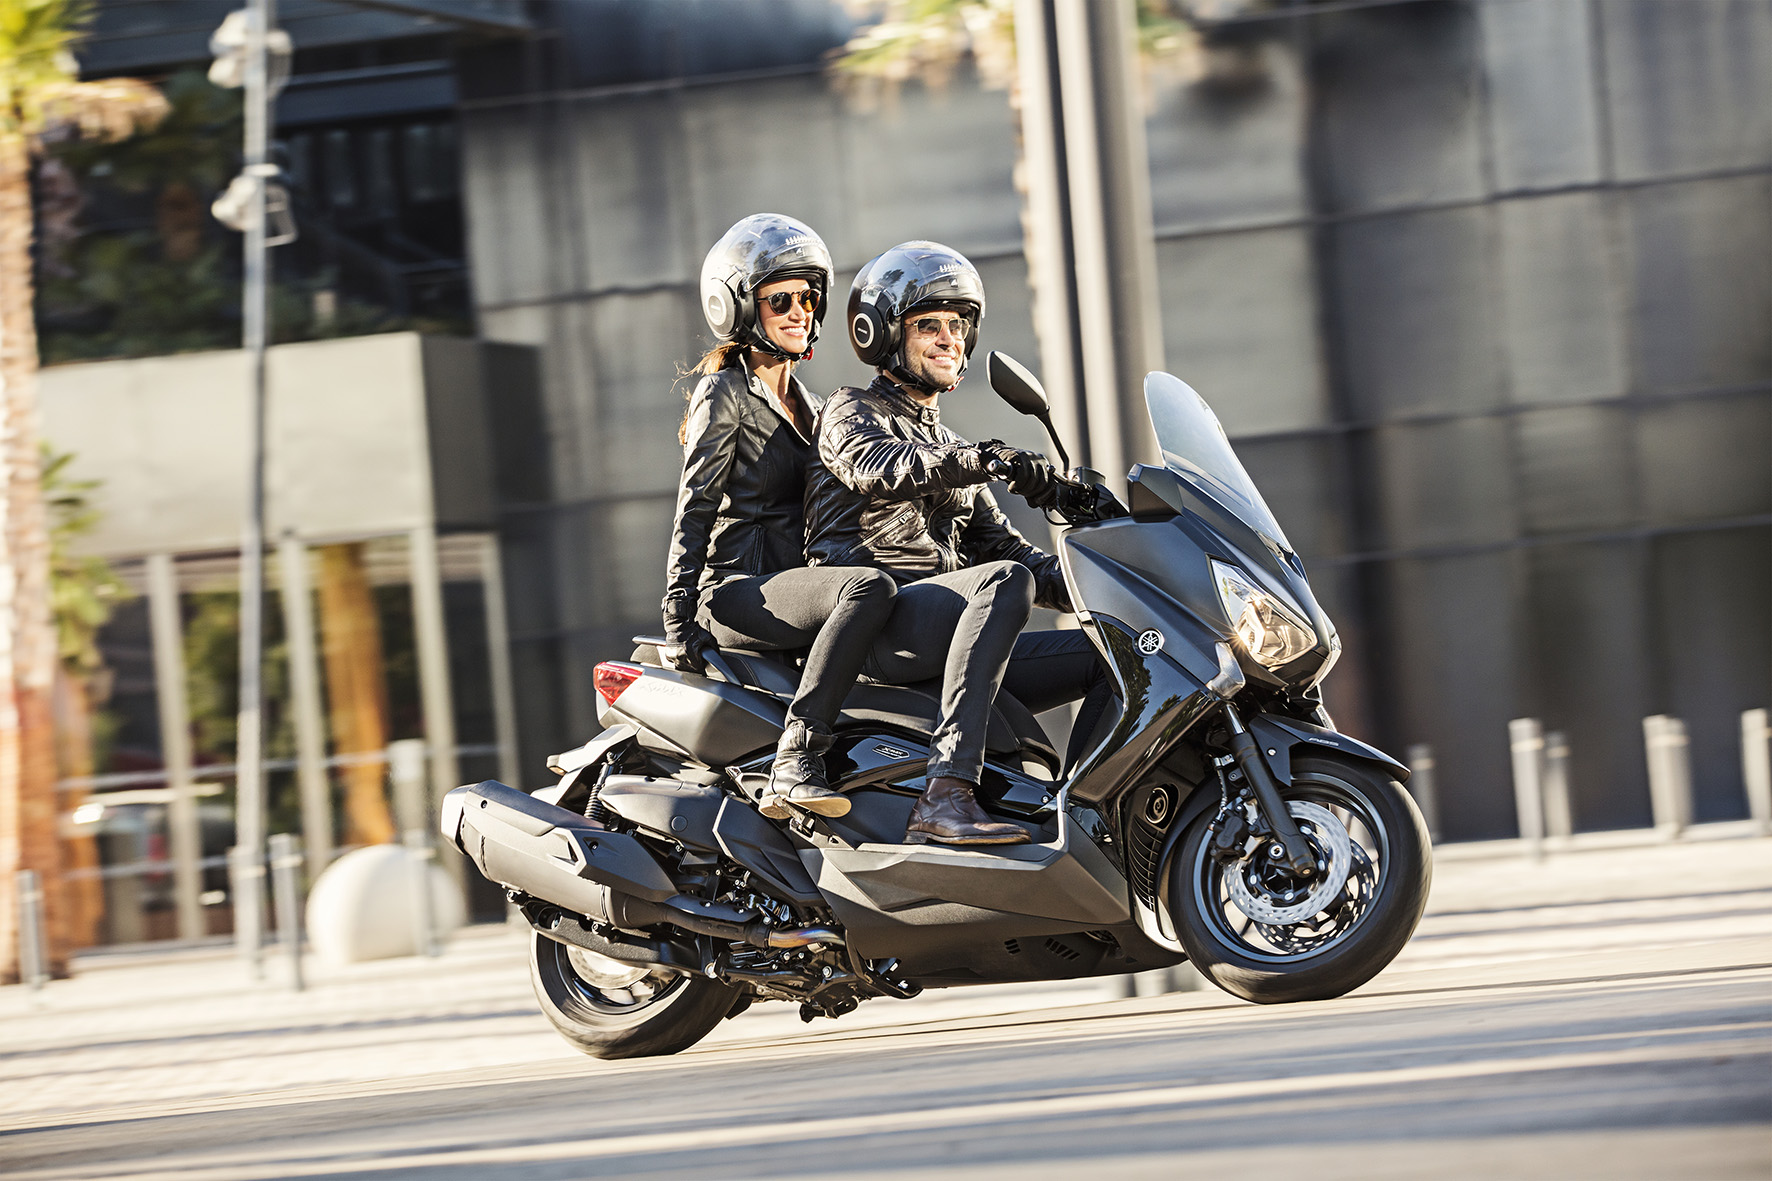 Redefine your streets met de Yamaha X-MAX IRON MAX